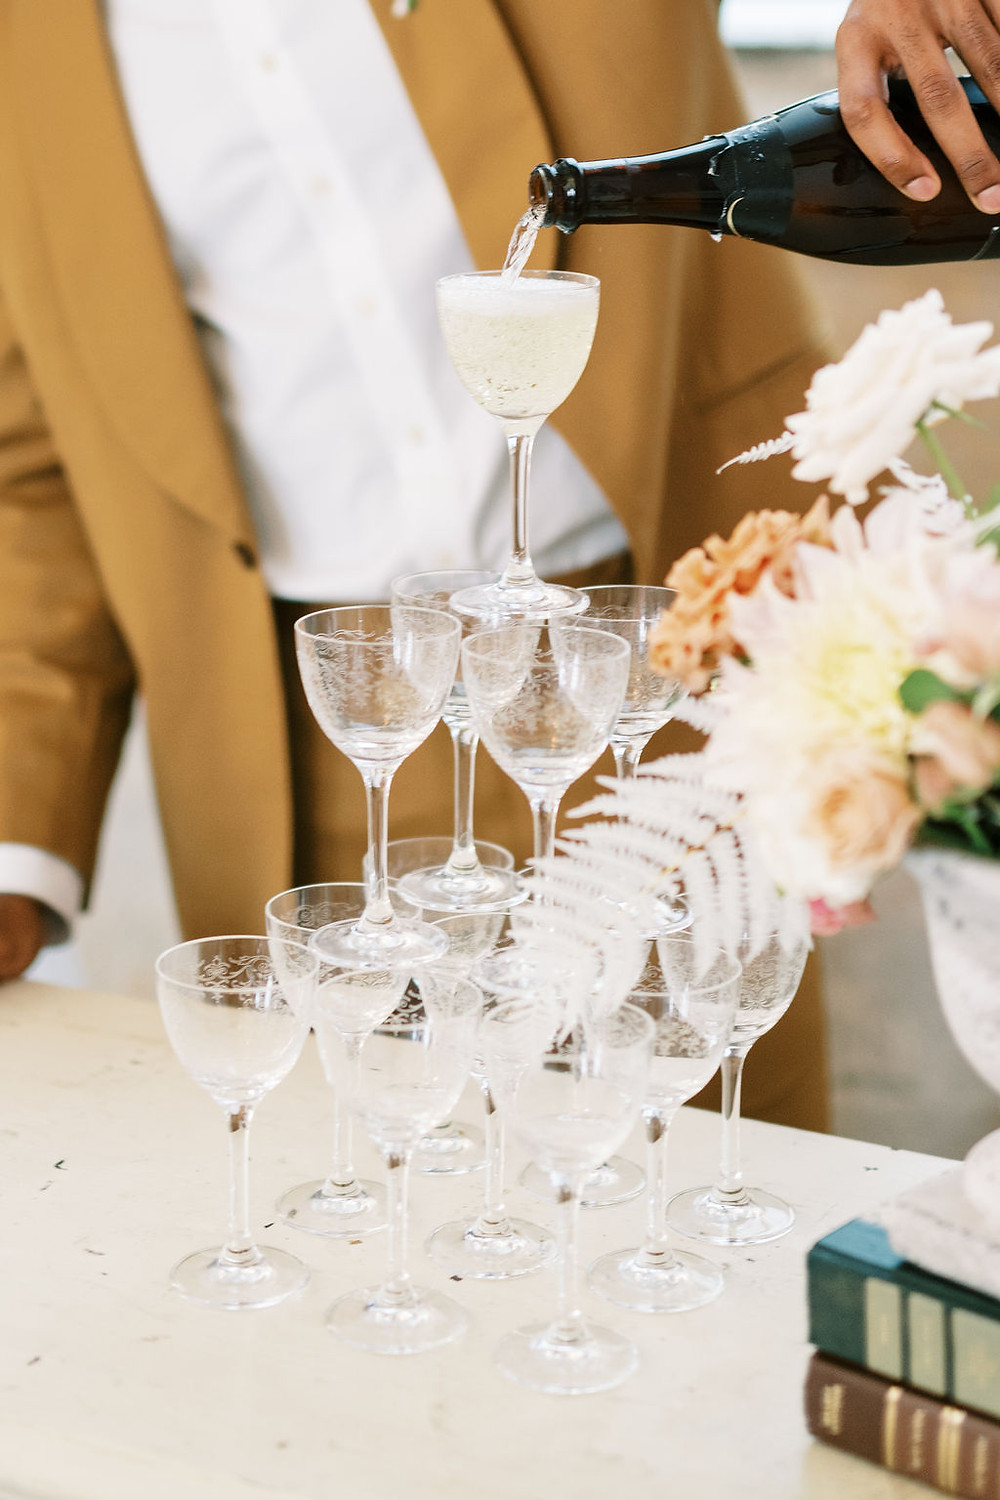 Groom Pouring Champagne Tower to Celebrate the Bridgerton Inspired Wedding at the Marigny Opera House in New Orleans with Decor and Vintage Furniture by Lovegood Rentals Featuring Antique Off White Buffet, Vintage Books and Overgrown Florals